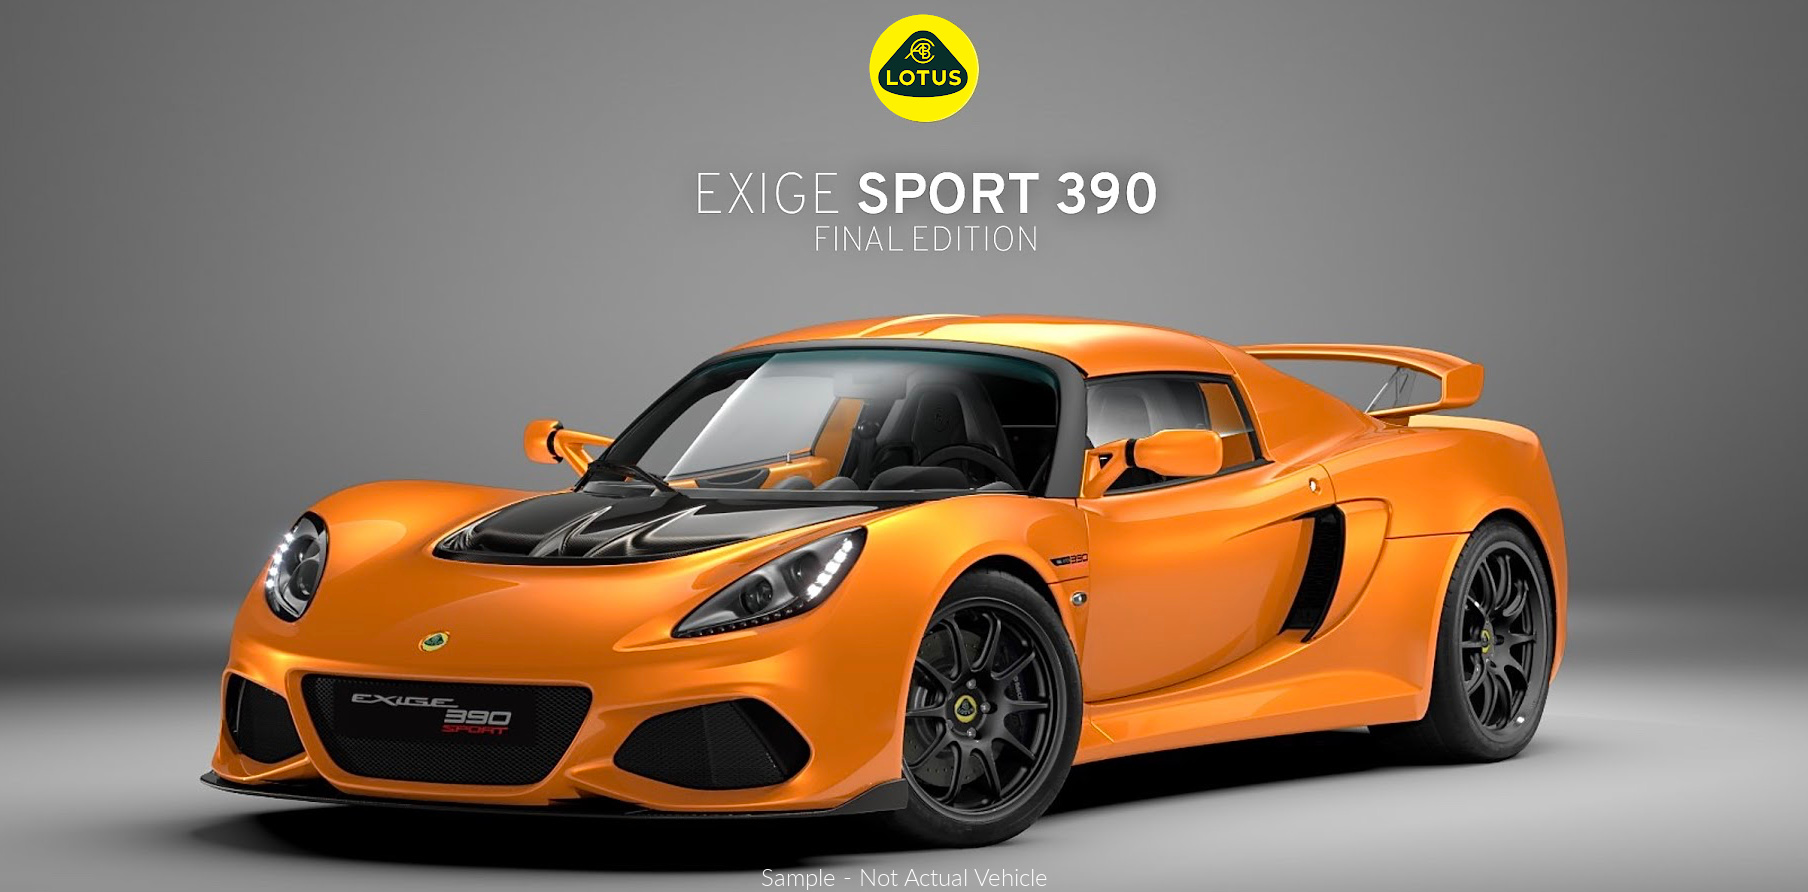 Lotus Exige Sport 390 Final Edition For Sale Perth